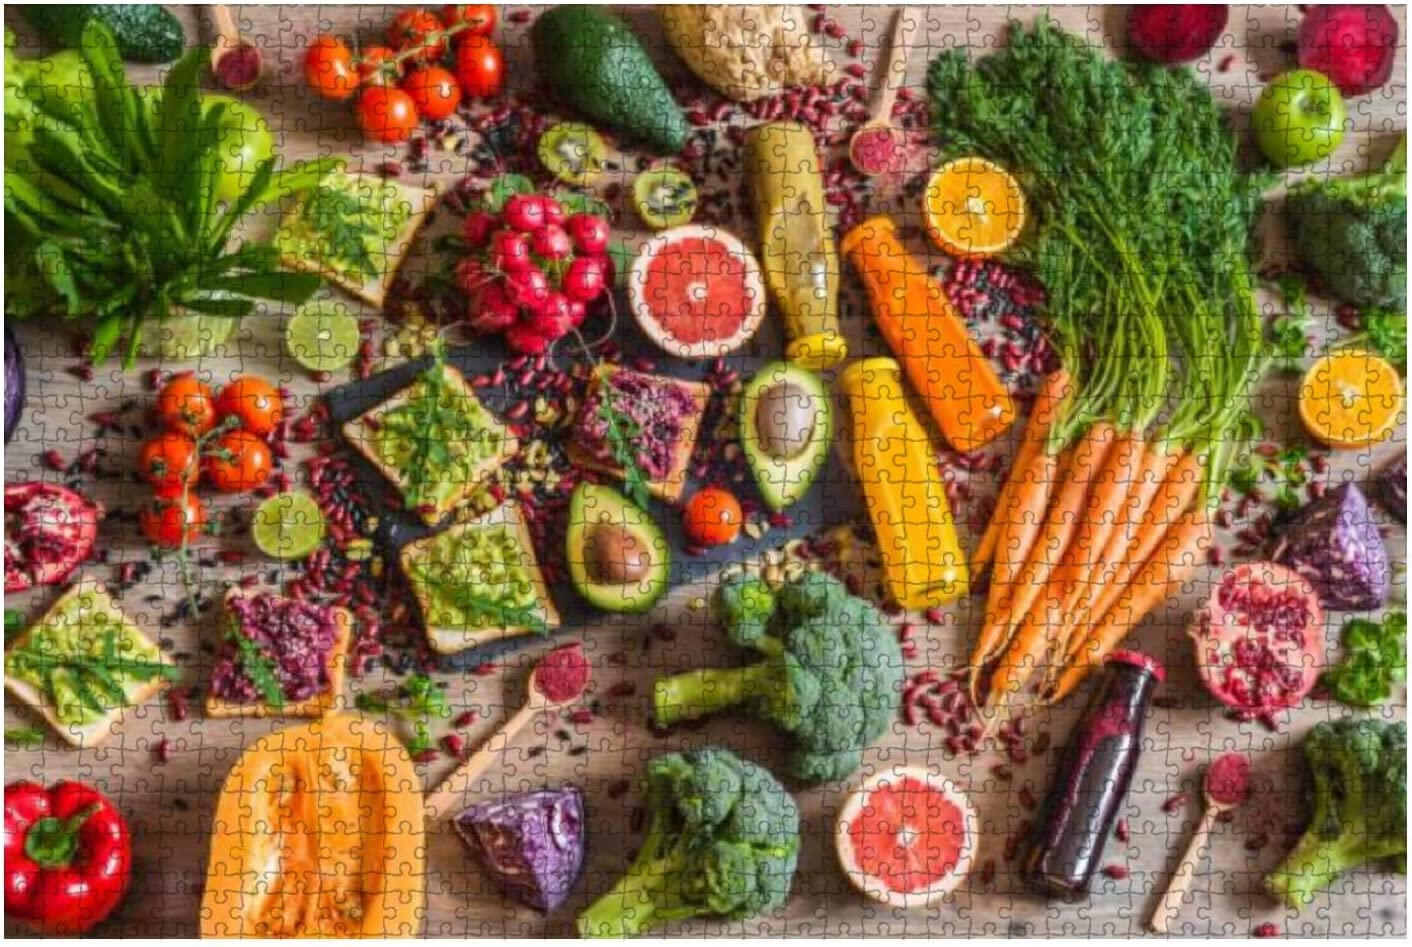 Wooden Puzzle 1000 Pieces Healthy Vegan Food Sandwiches and Fresh Vegetables on Wooden Jigsaw Puzzles for Children or Adults Educational Toys Decompression Game